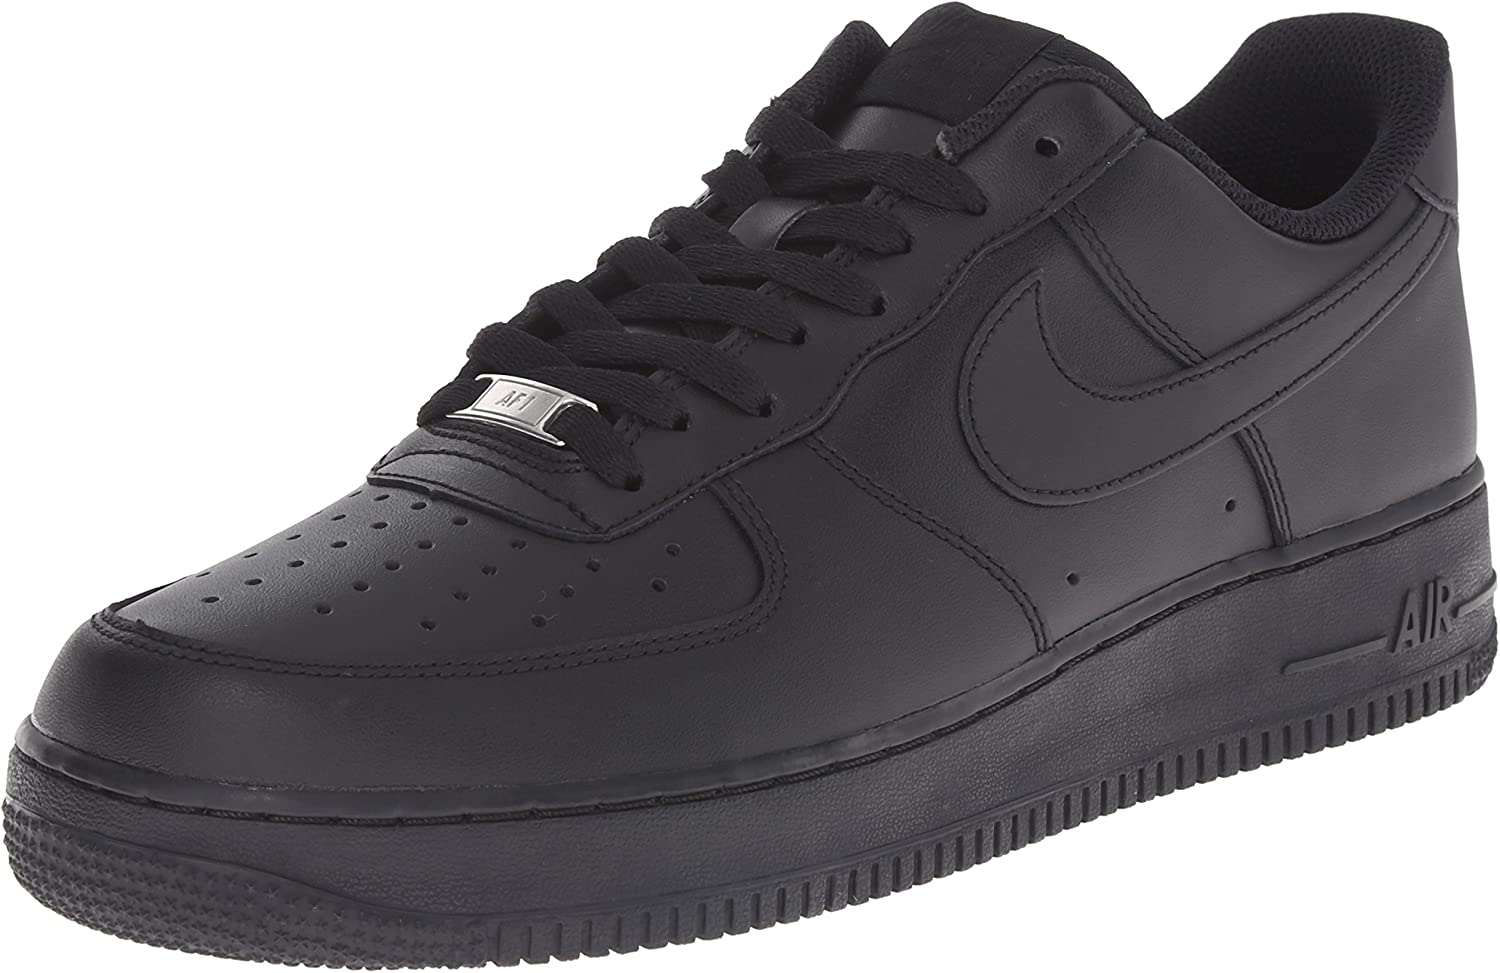 Nike Air Force 1 Shoes Amazon.com | Nike Men's Air Force 1 Low Sneaker | Basketball